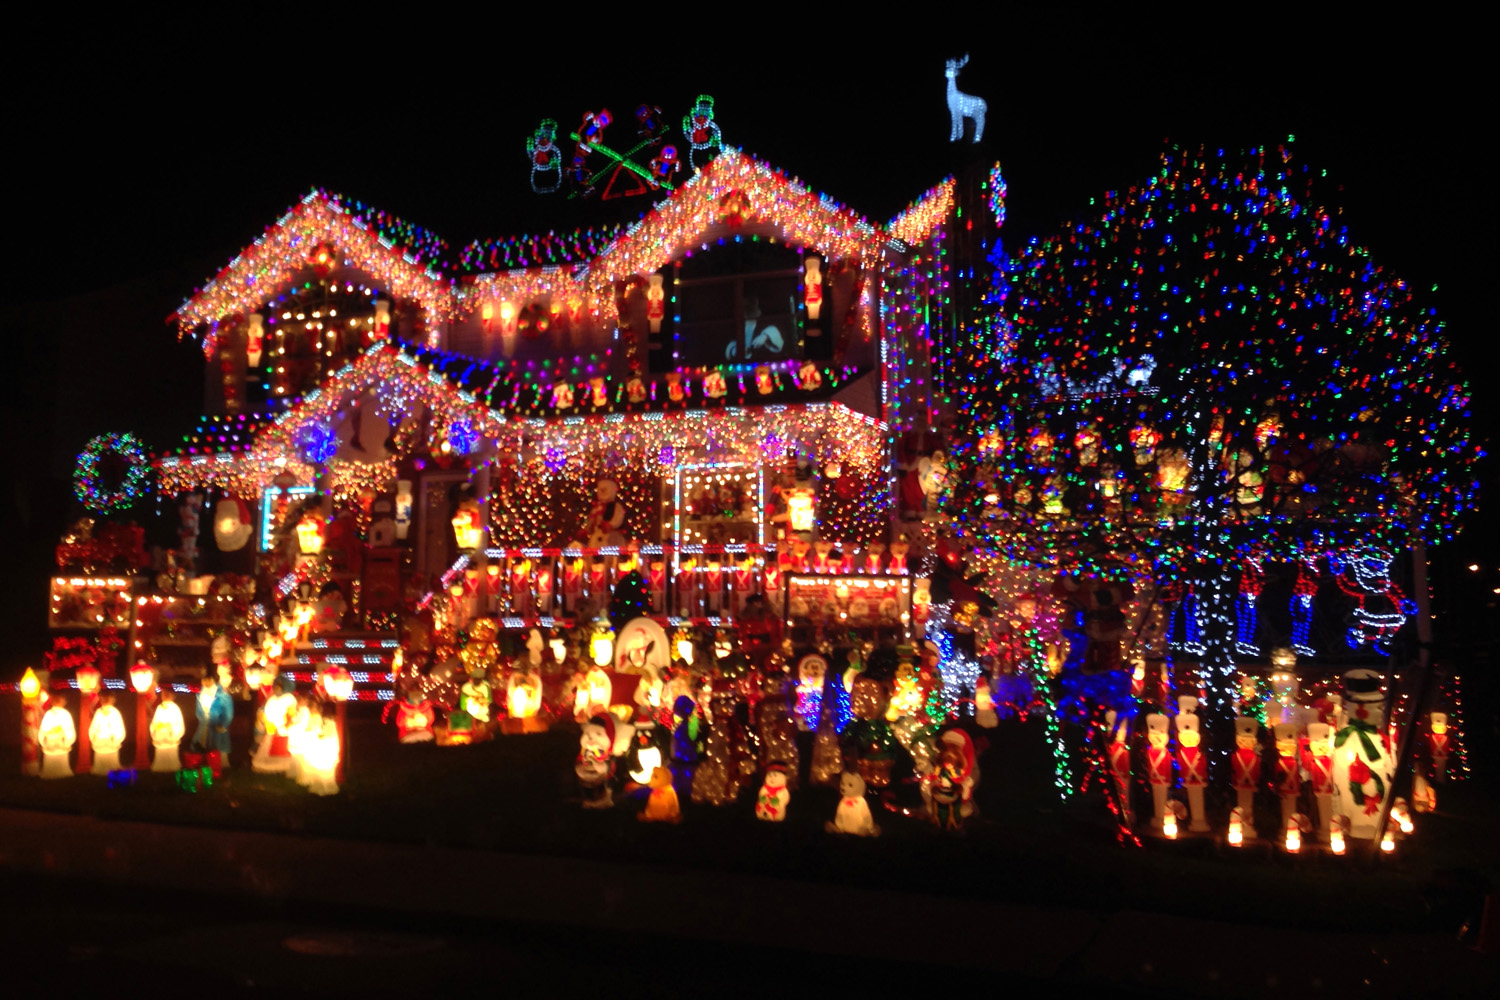 Christmas lights in a minute abidan paul shah for Christmas lights and decorations